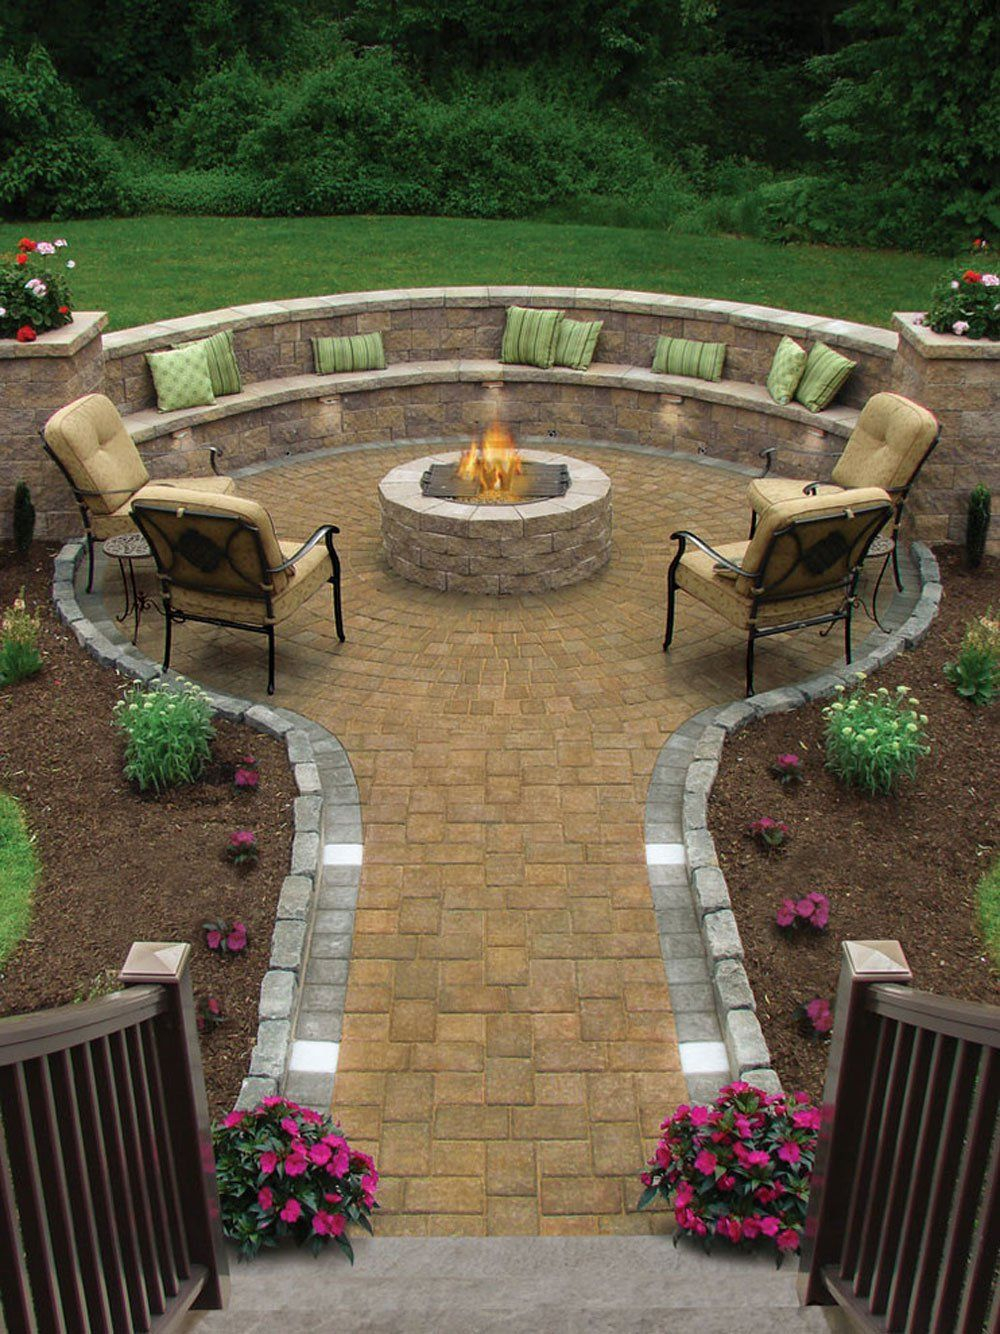 17 Of The Most Amazing Seating Area Around The Fire Pit Ever intended for dimensions 1000 X 1334